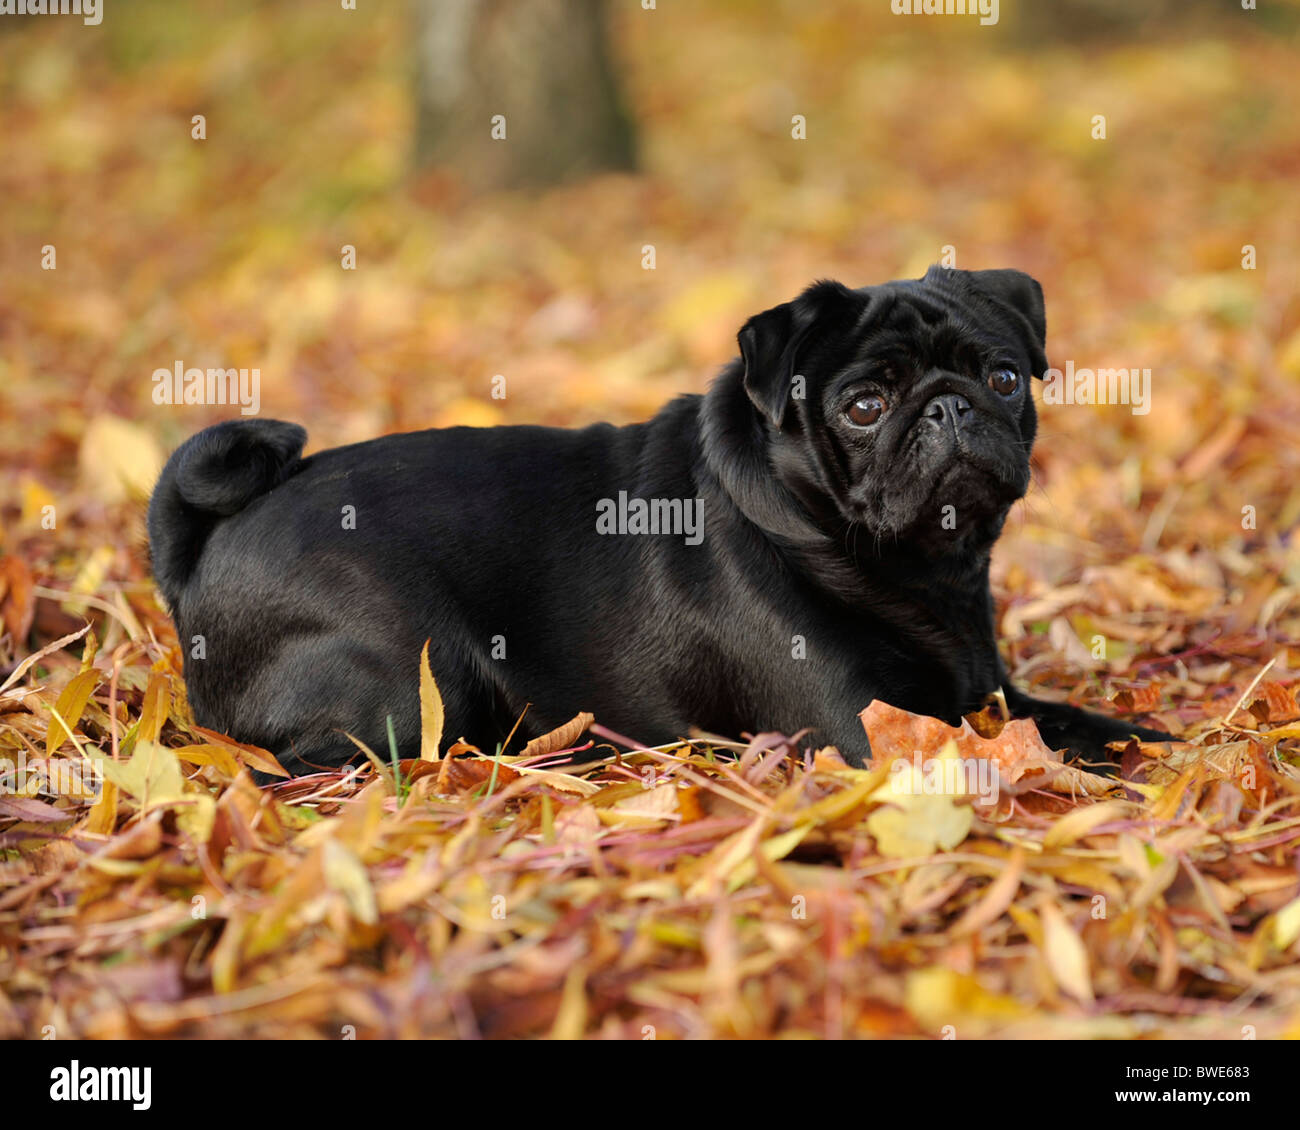 pug dog lying in autumn leaves - Stock Image